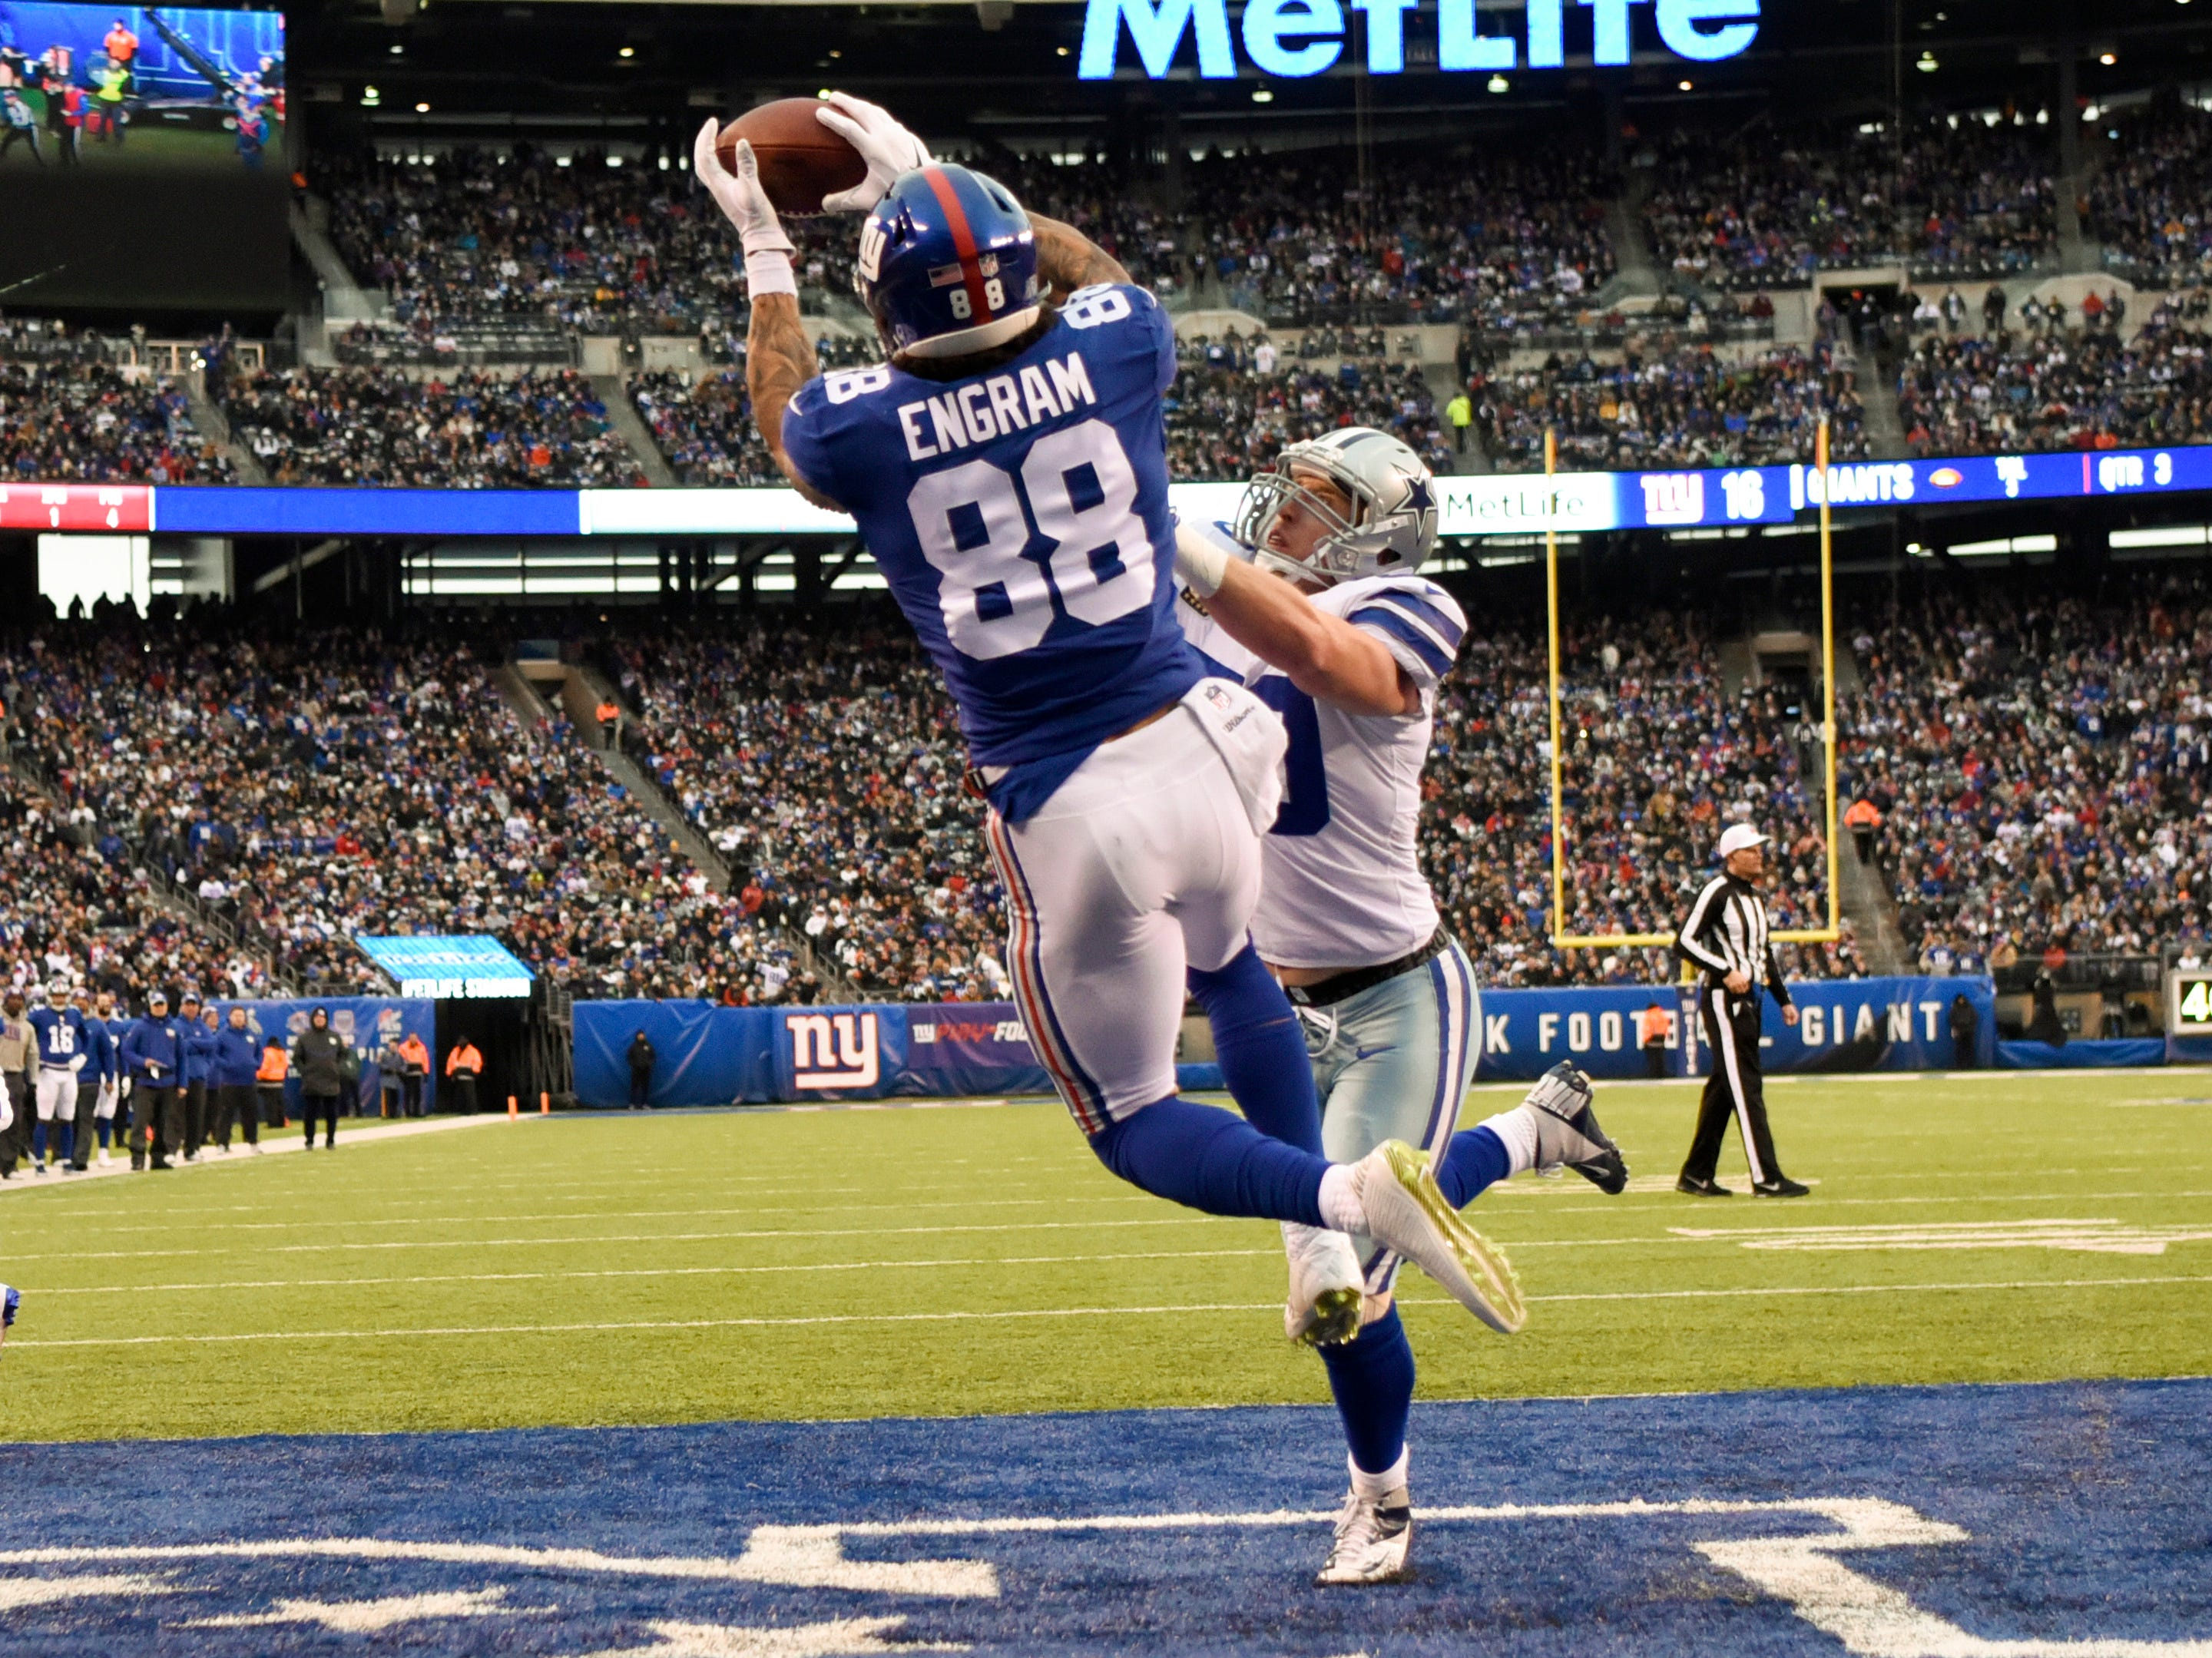 New York Giants tight end Evan Engram (88) completes a catch for a two-point conversion in the third quarter. The New York Giants lose to the Dallas Cowboys 36-35 on Sunday, Dec. 30, 2018, in East Rutherford.